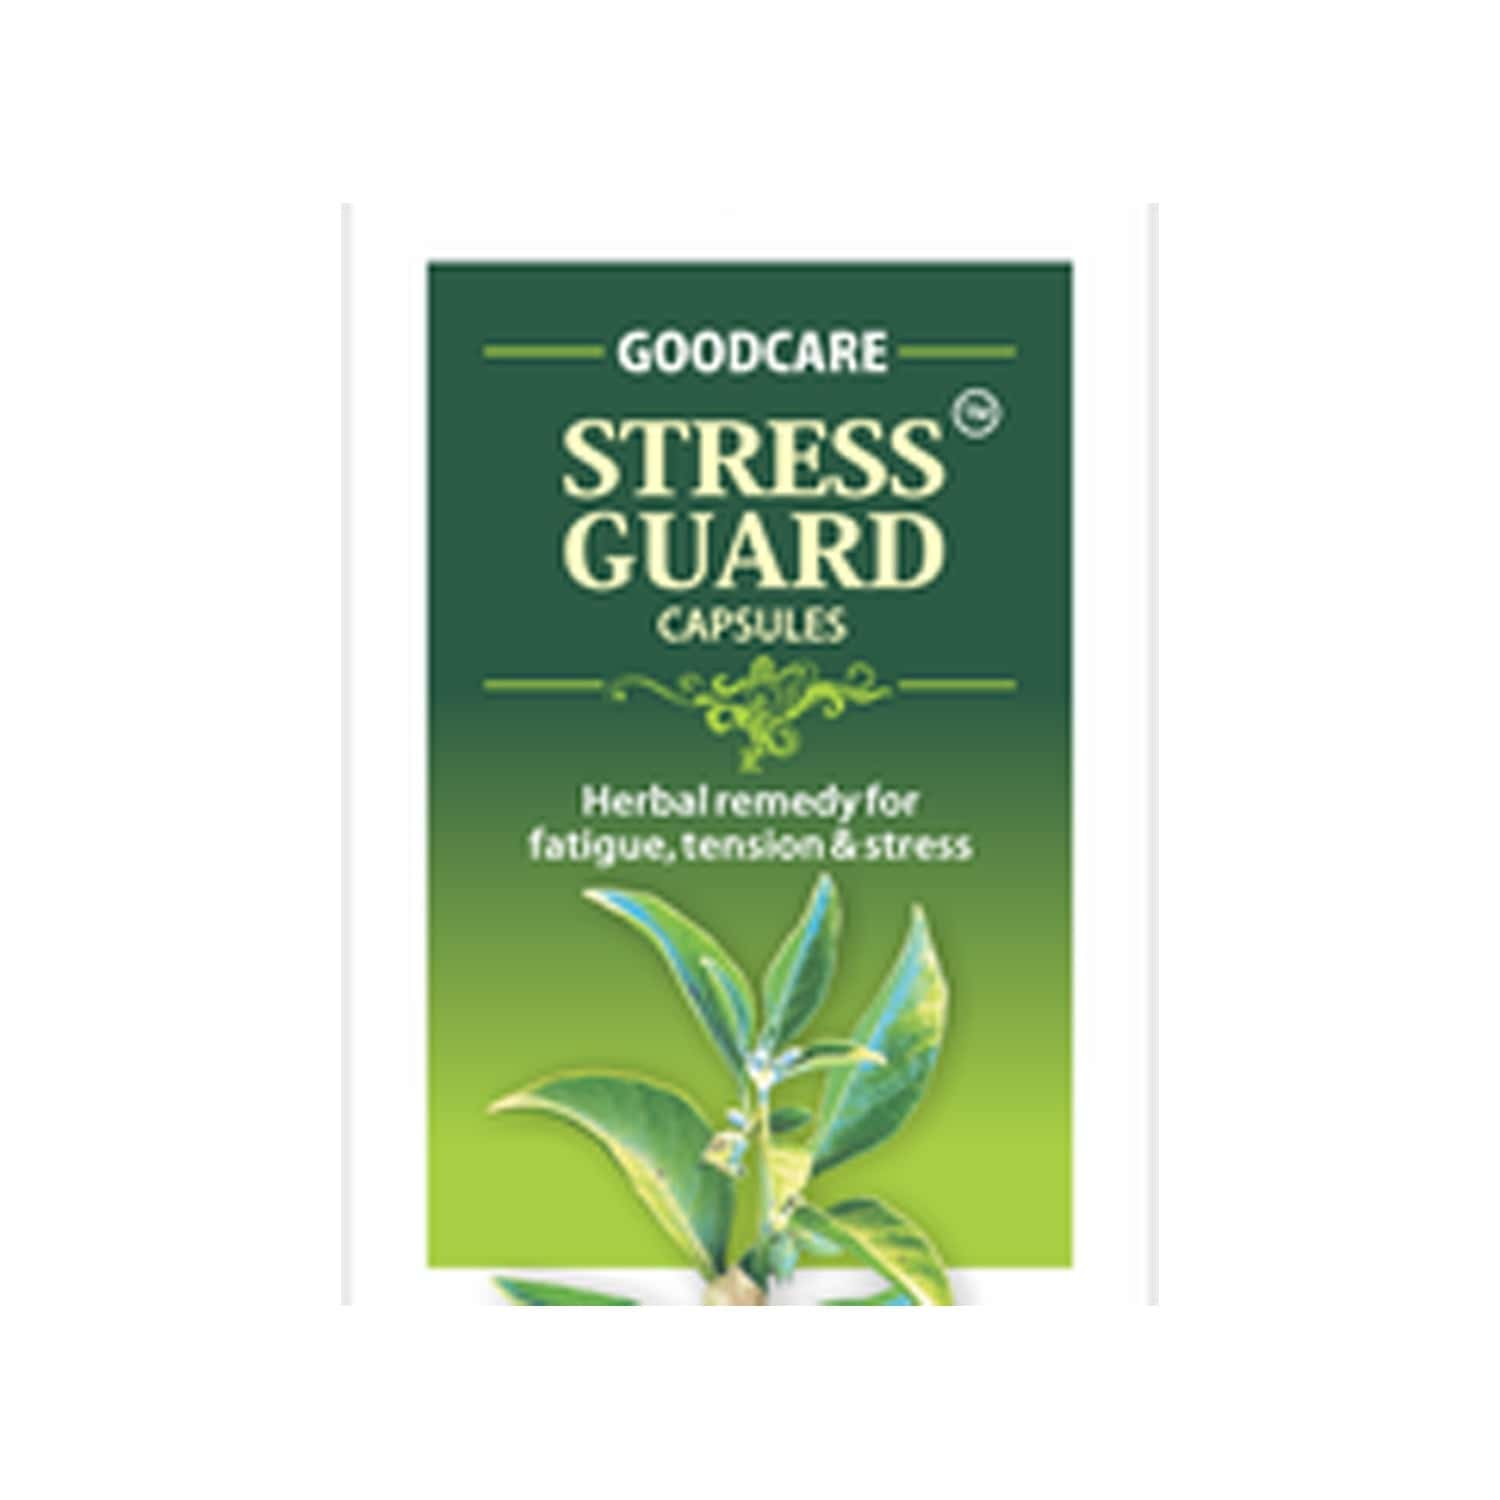 Goodcare Stress Guard - 60no's